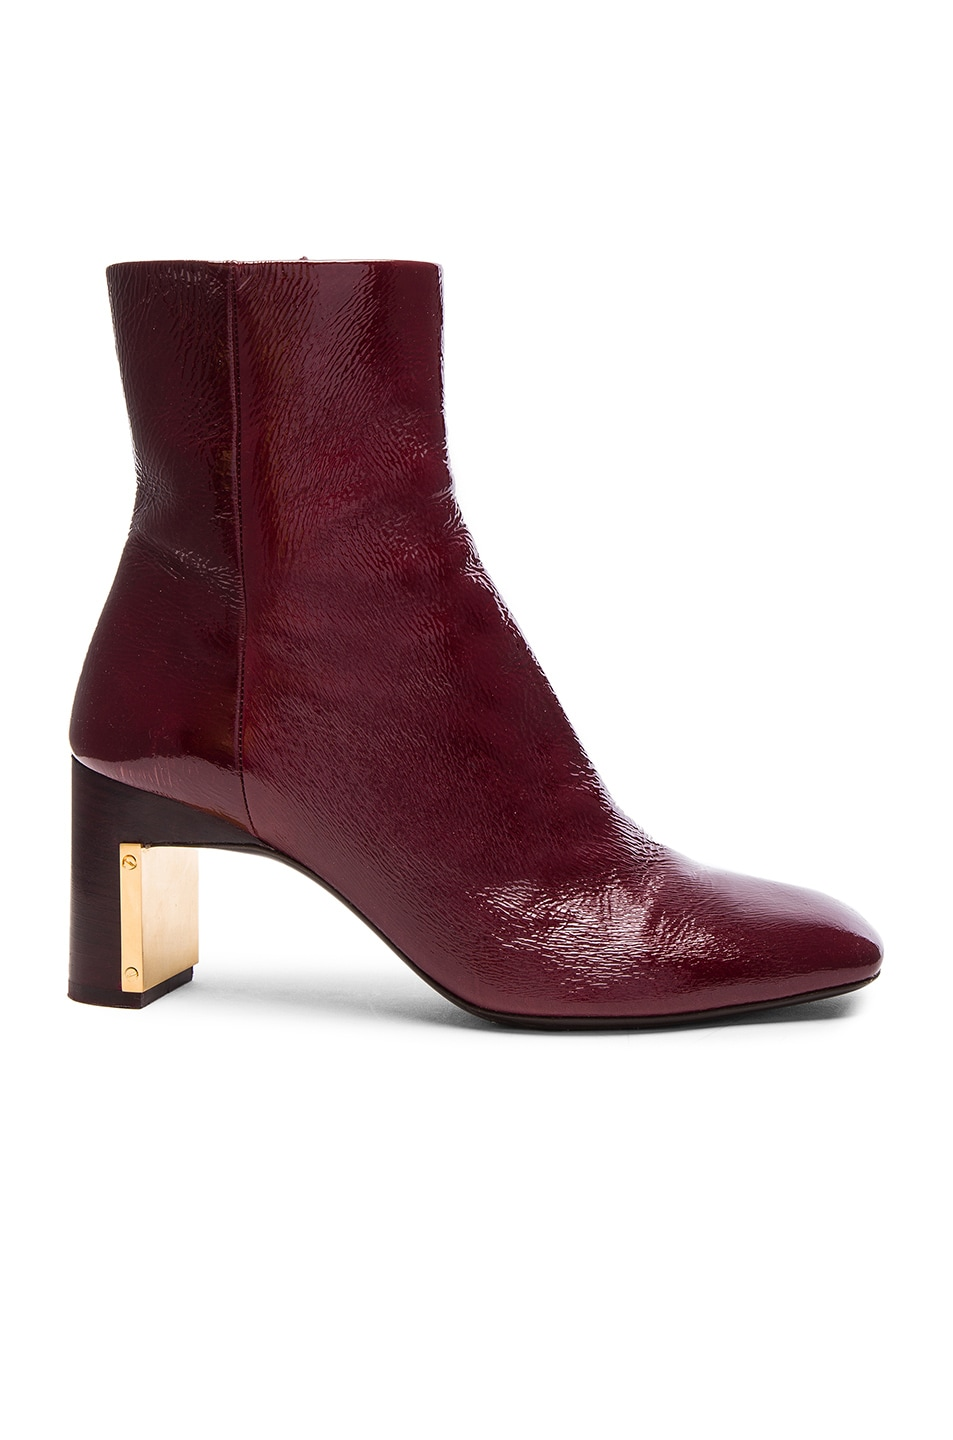 Image 1 of Rosetta Getty Heeled Ankle Bootie in Bordeaux